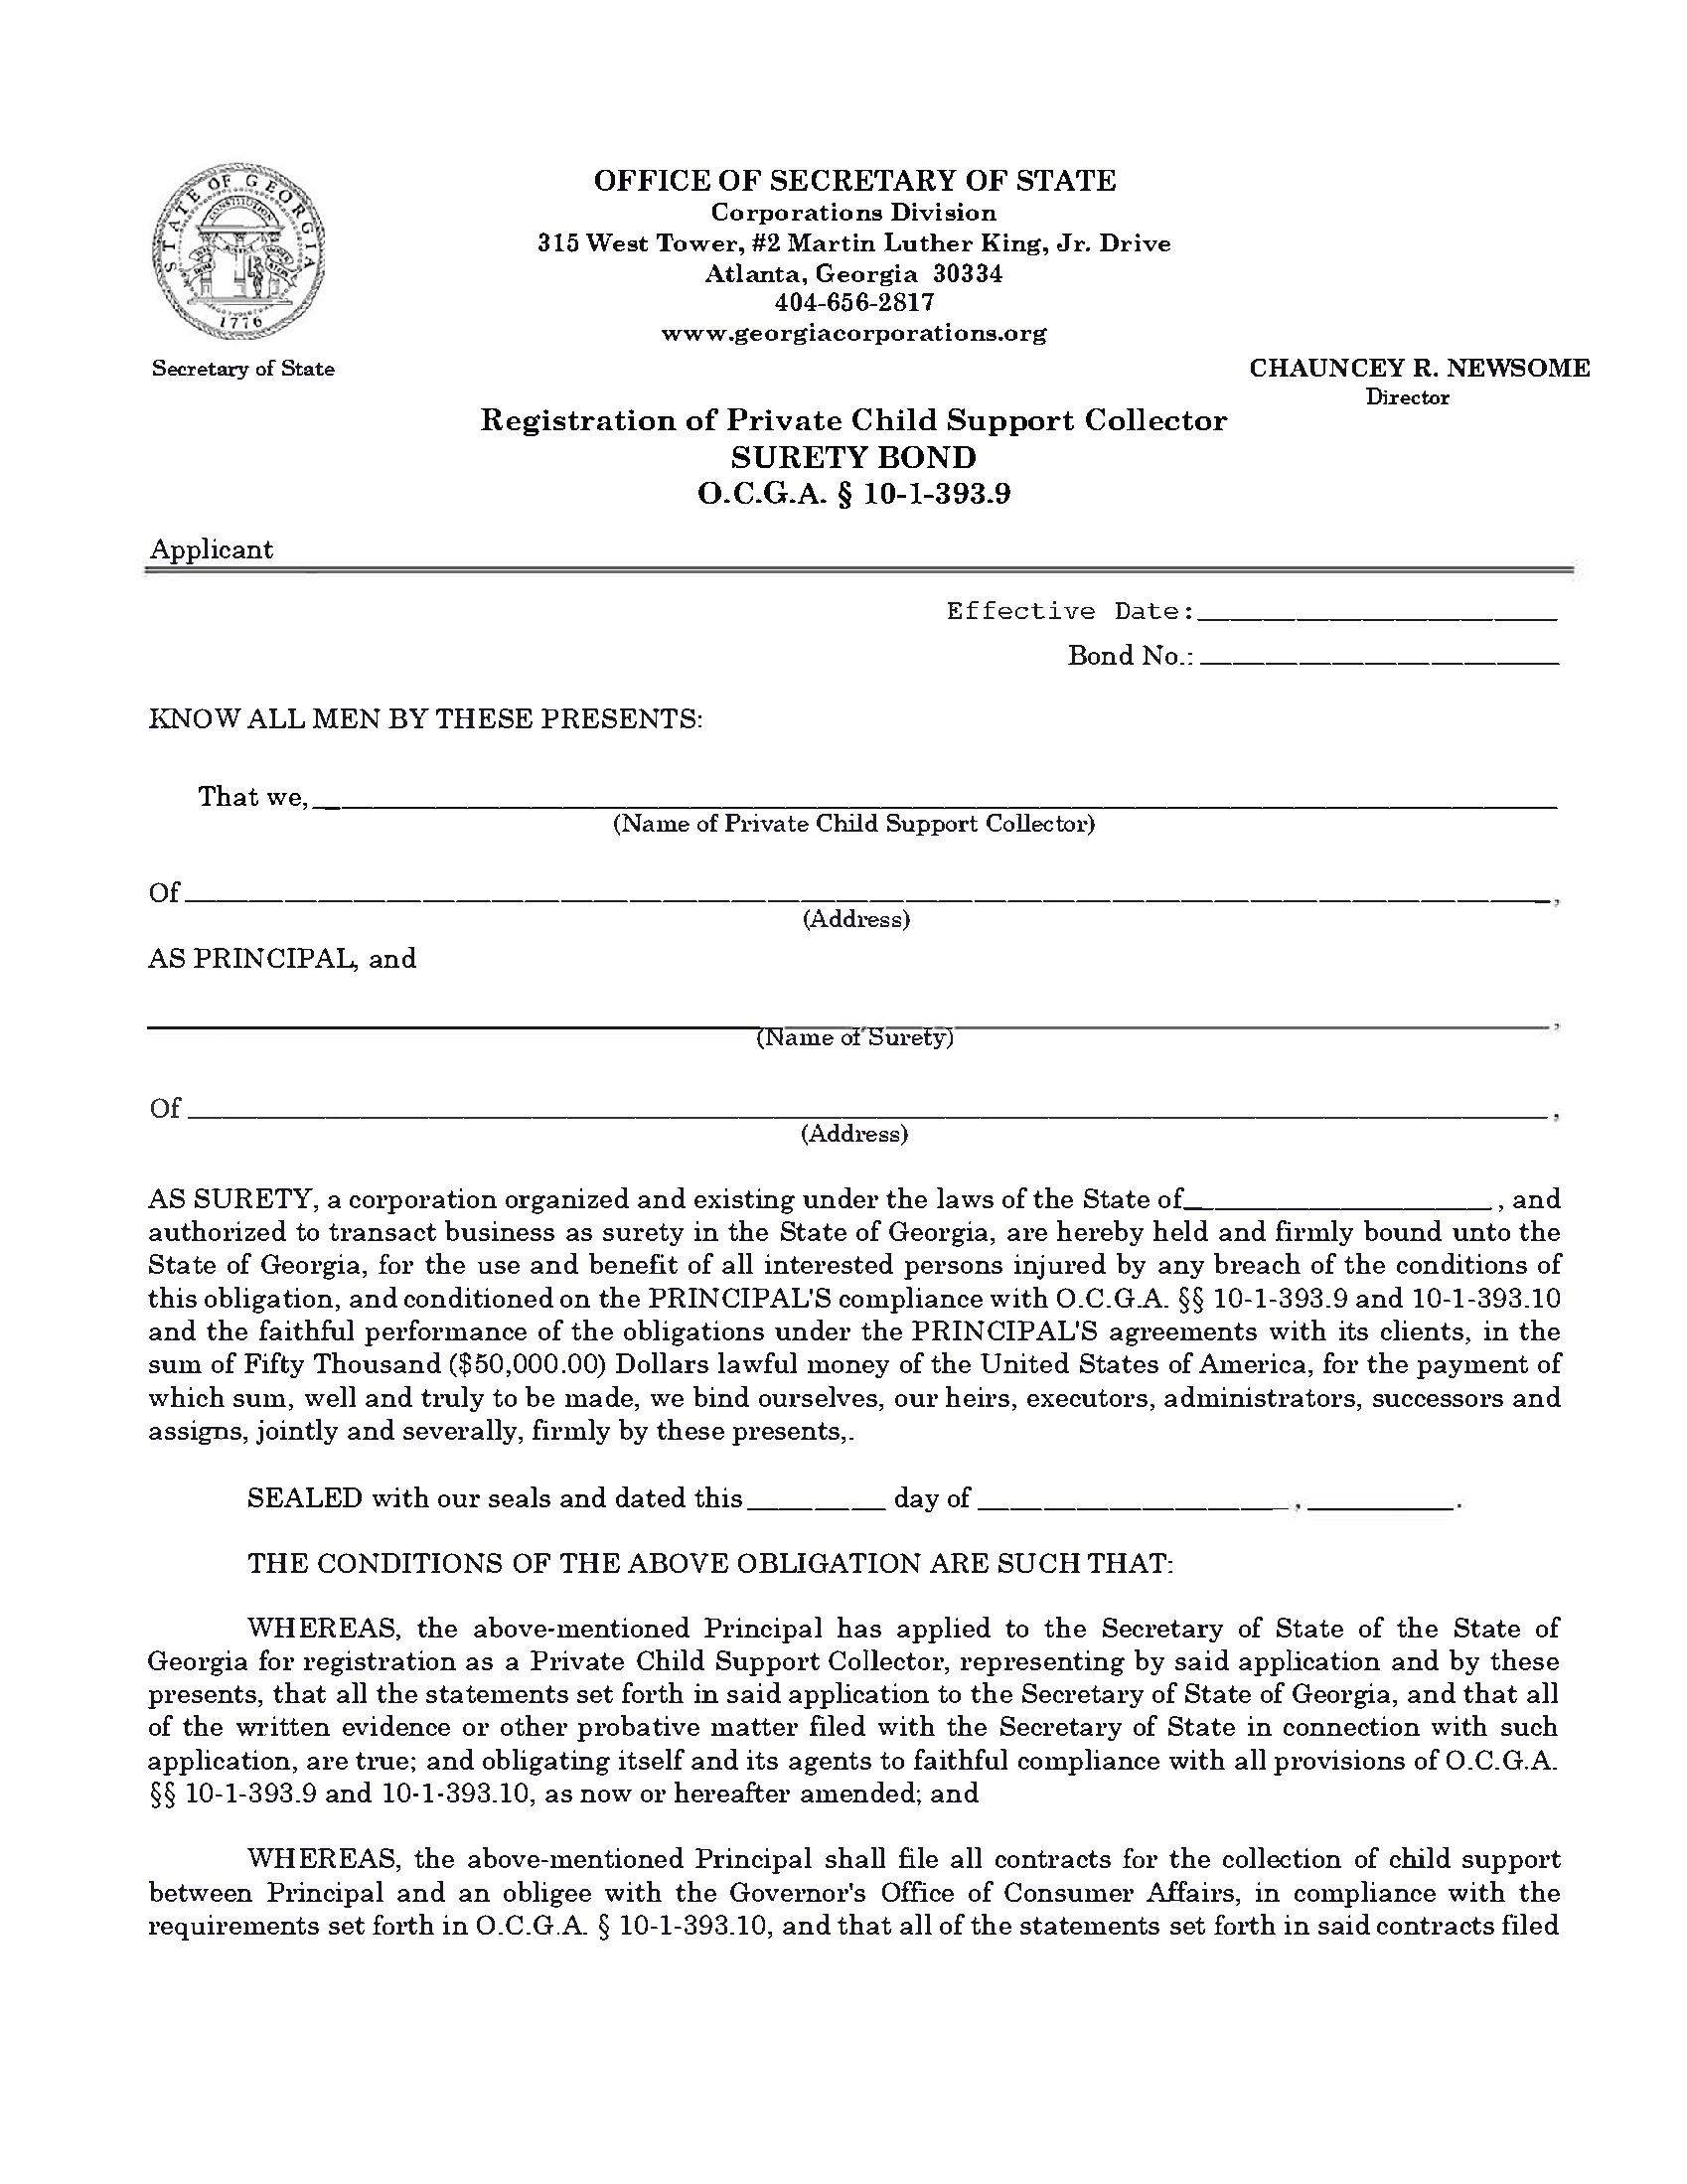 Office of Secretary of State Private Child Support Collector sample image